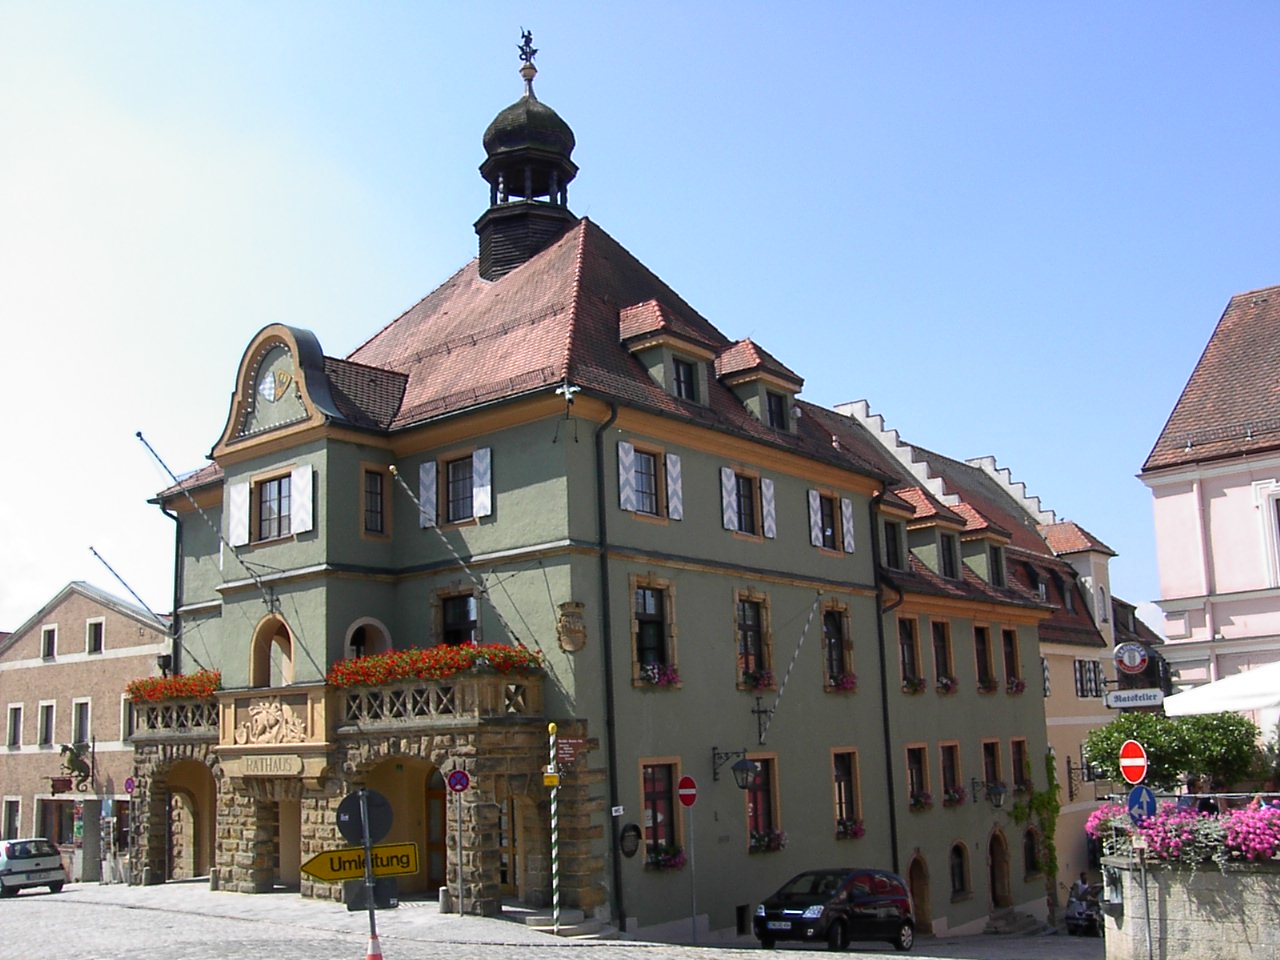 furth im wald chatrooms Search for recommended furth im wald hotels book promo rate for cheap hotels with traveloka.